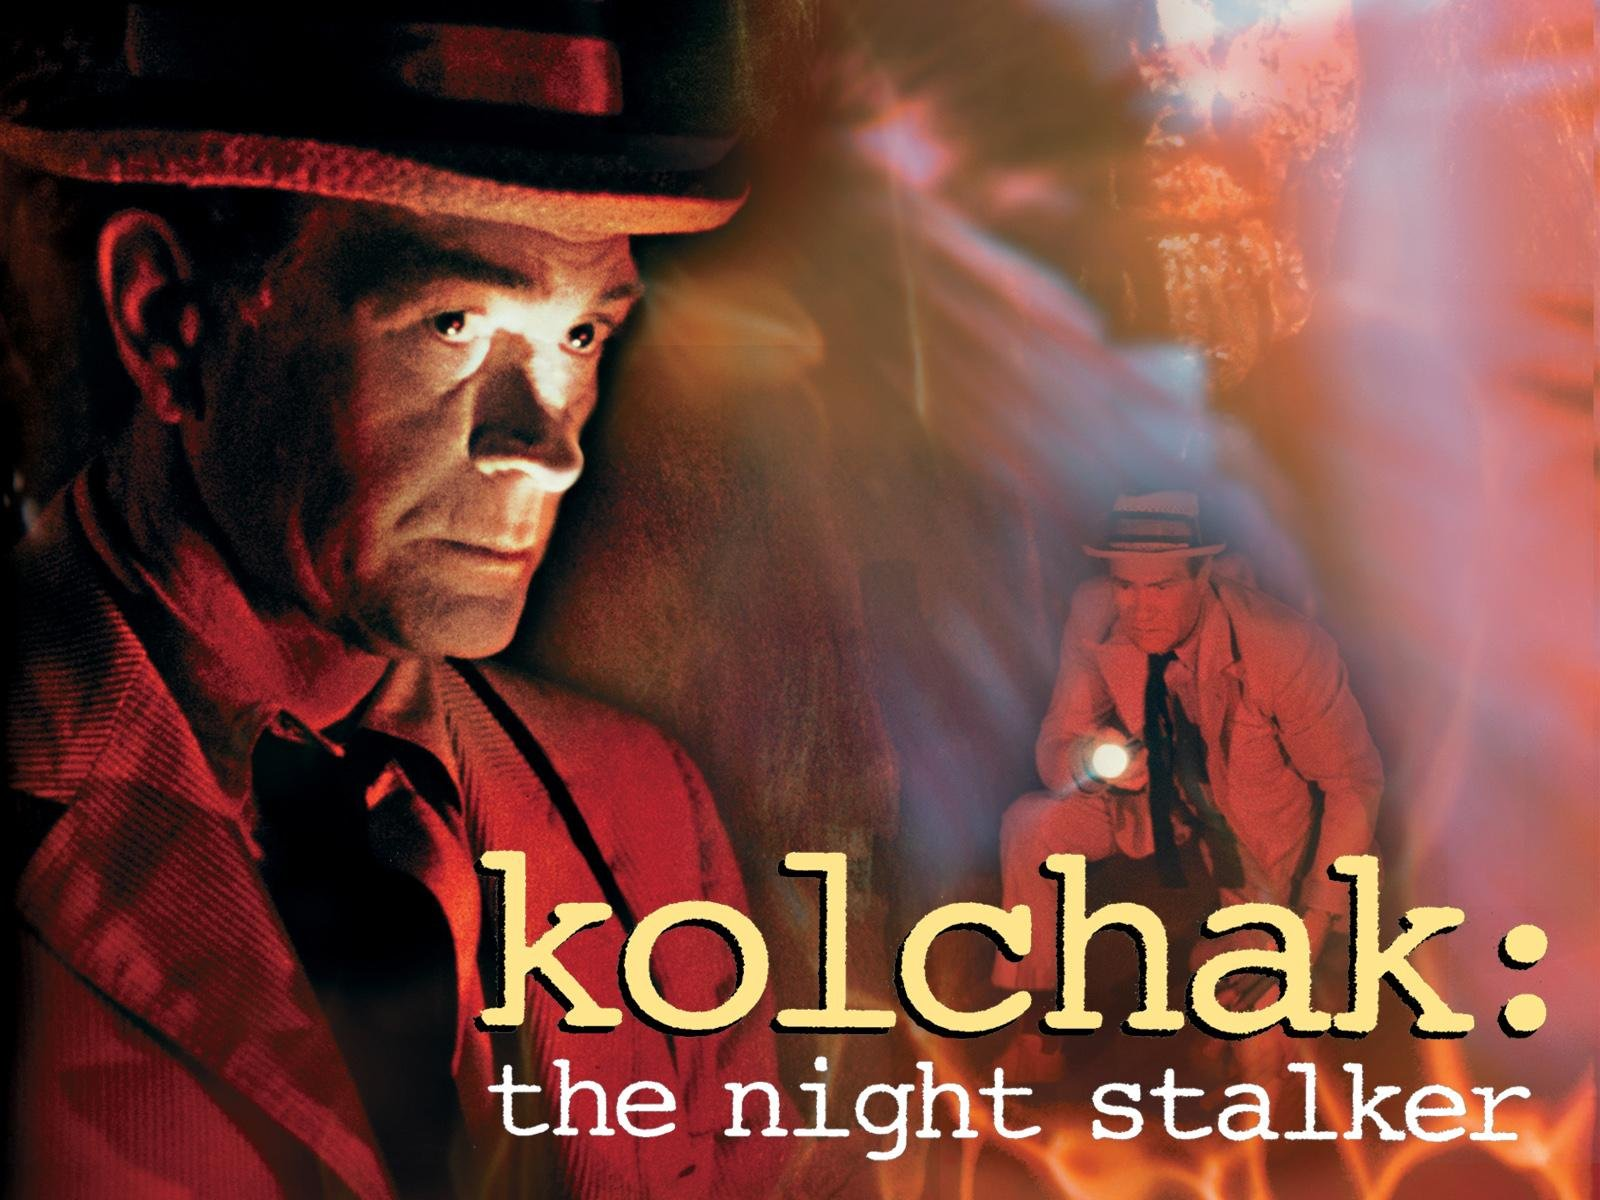 KOLCHAK is a cult classic and inspired many programs including the uber-popular X-FILES. Kolchak's premise had a lot in common with works like Scooby Doo, where the average investigator investigated more spectacular crimes.